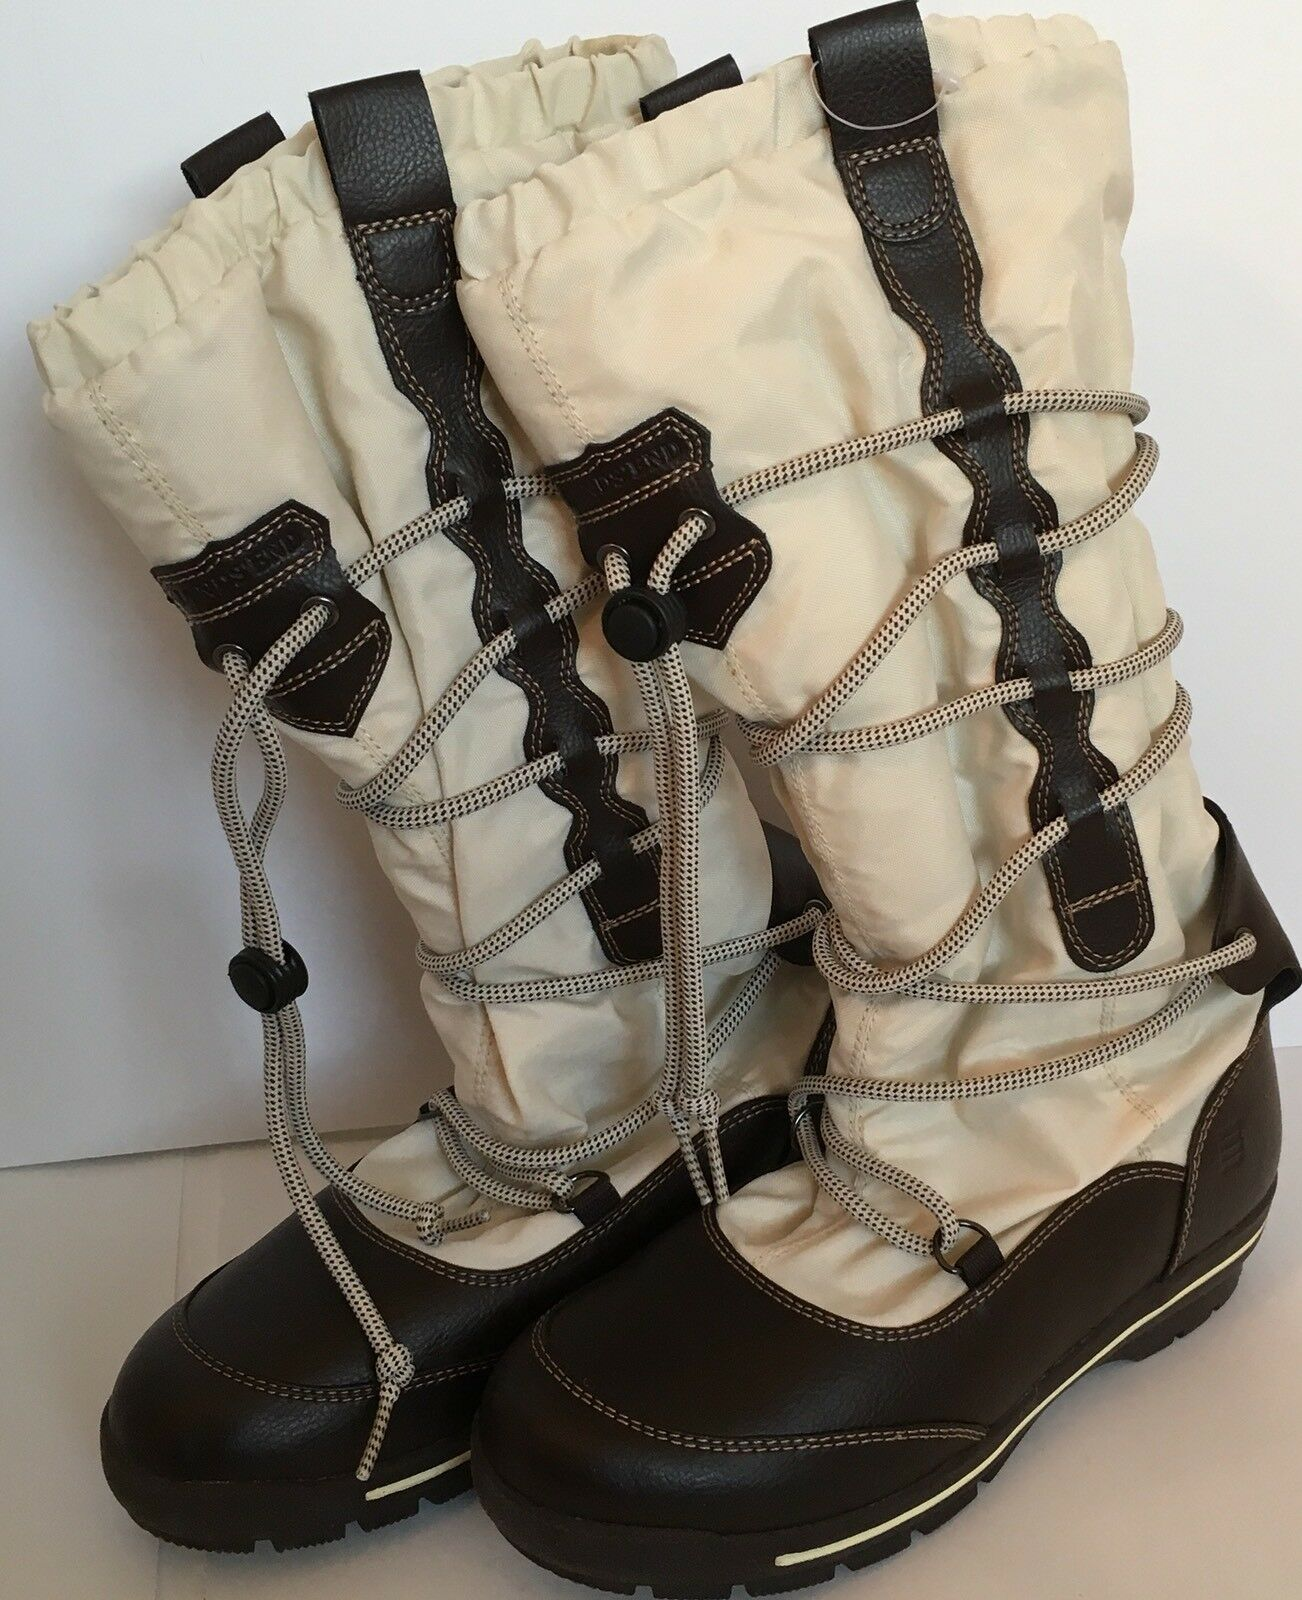 Lands End Womens Size 7B Off white Lace-Up Mid Calf Winter Boots Fleece Lined WR